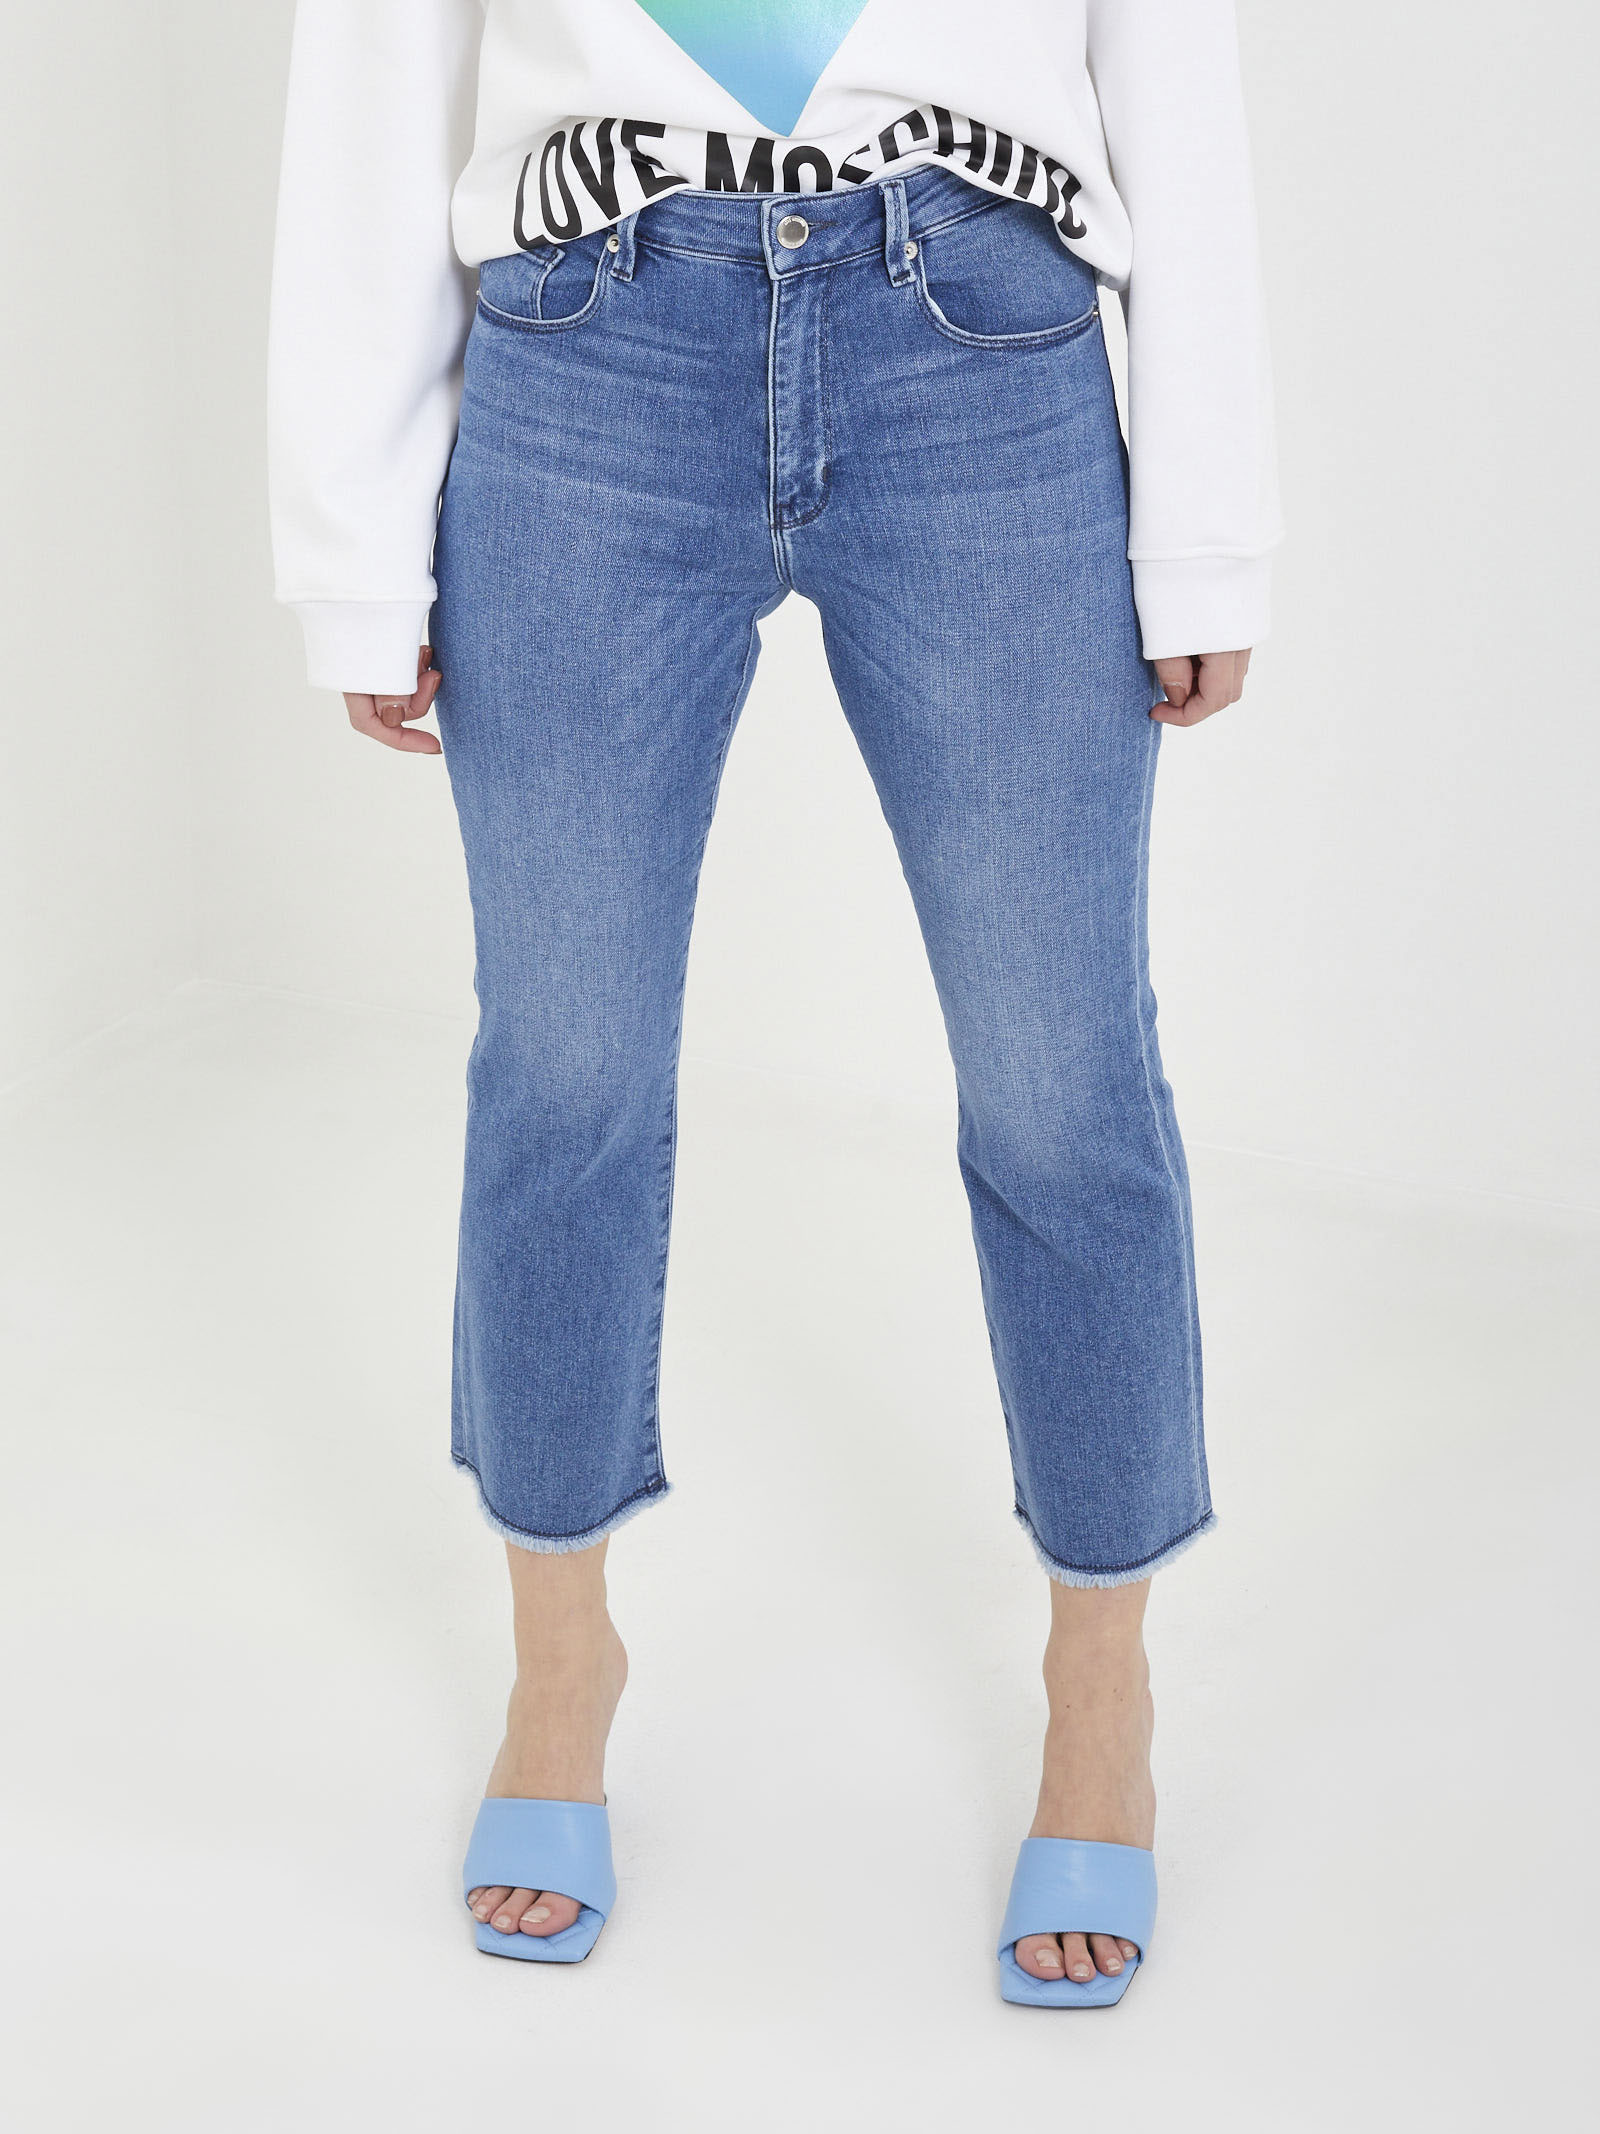 Jeans MOSCHINO | Jeans | WQ456 02 SJEANS